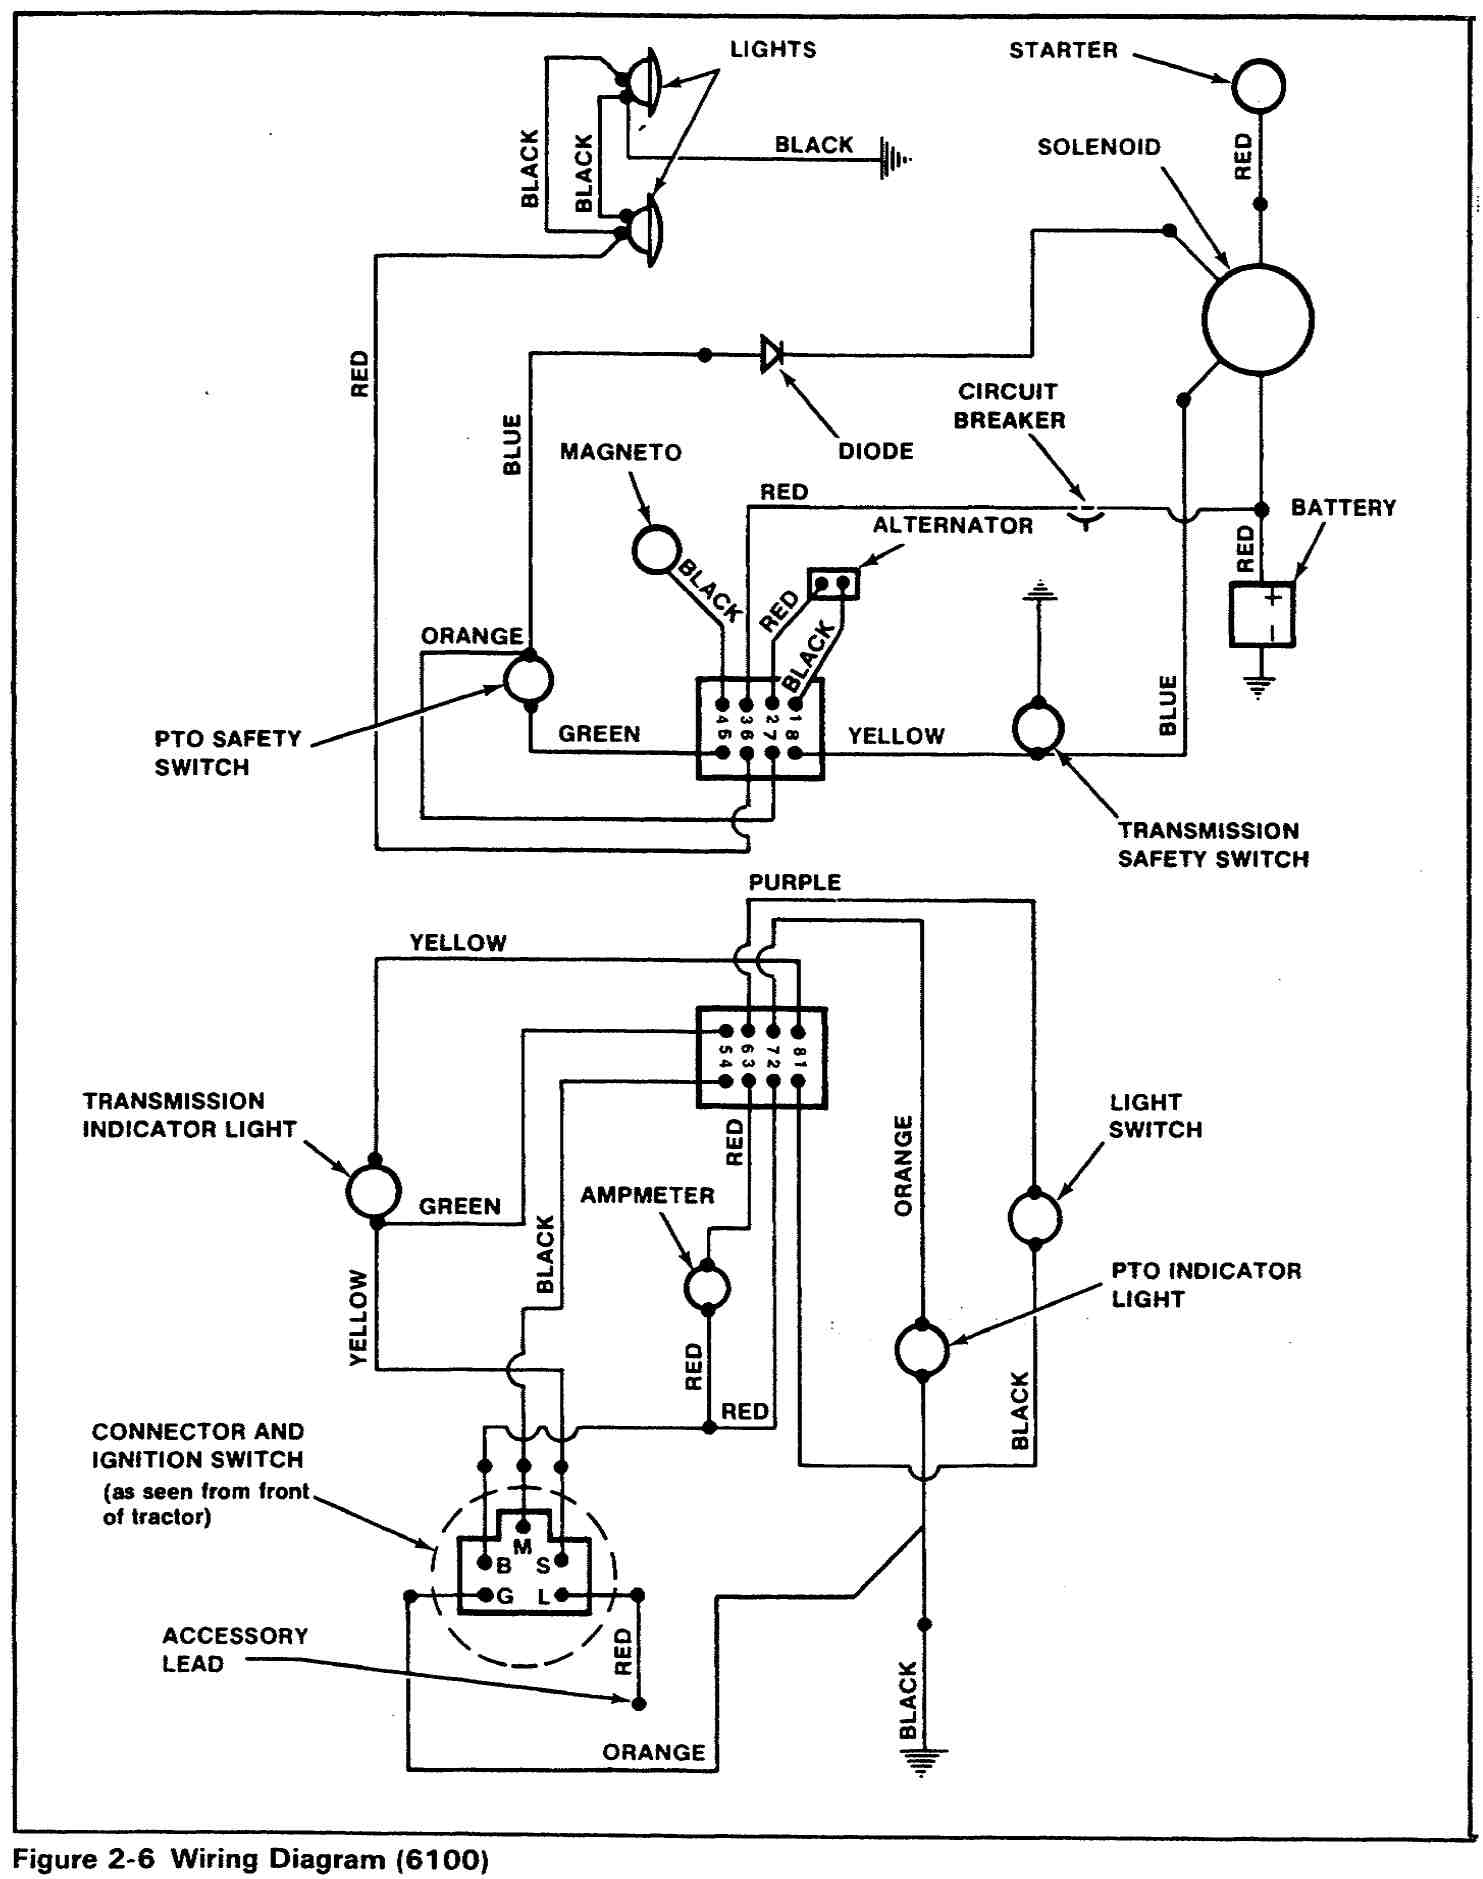 wiring diagram for simplicity prestige wiring discover your simplicity broadmoor lawn tractor wiring diagram nodasystech